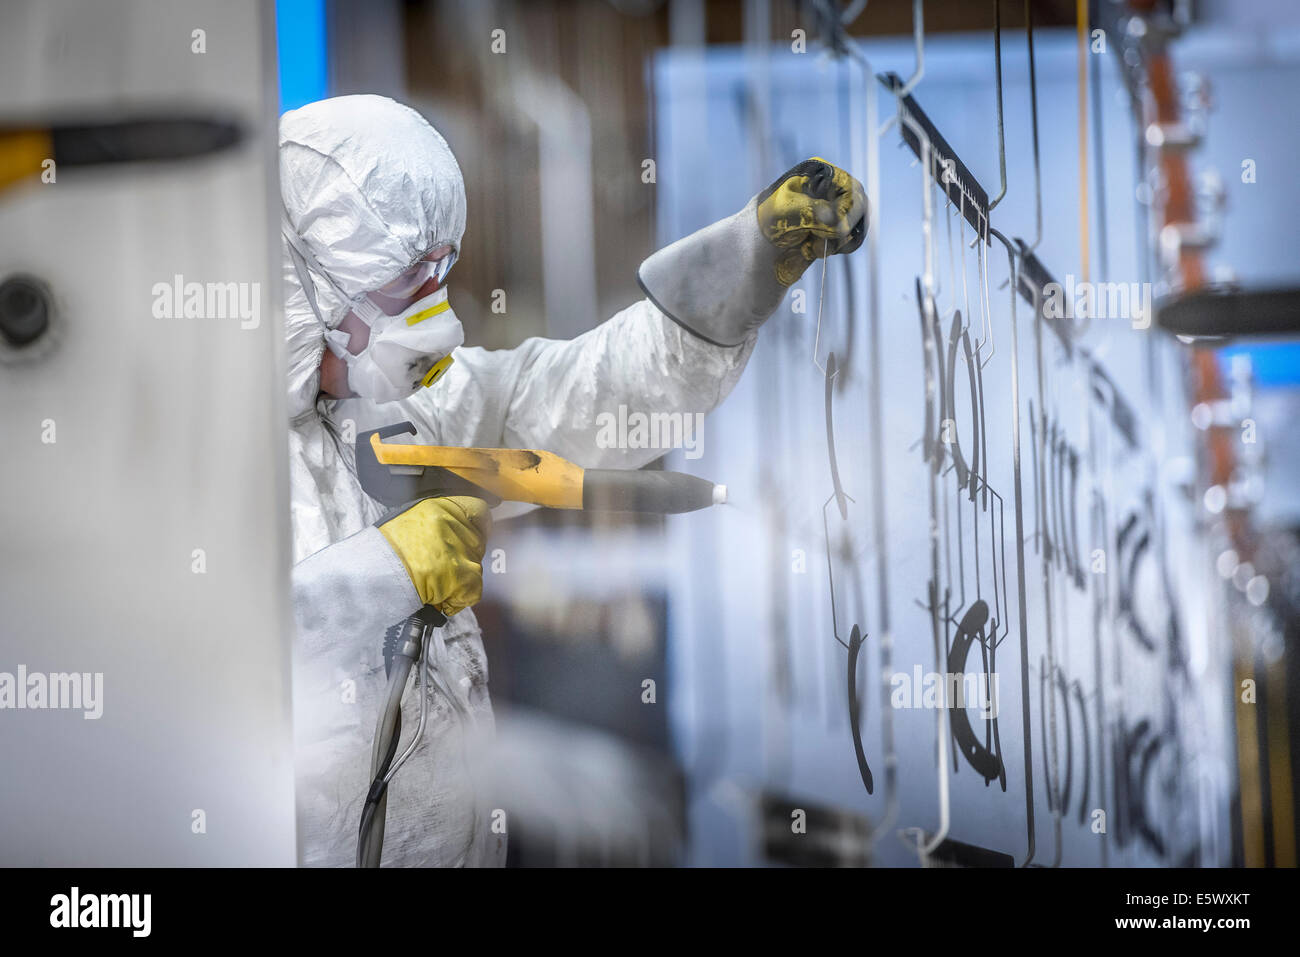 Worker powder coating parts in paint spray booth in sheet metal factory - Stock Image